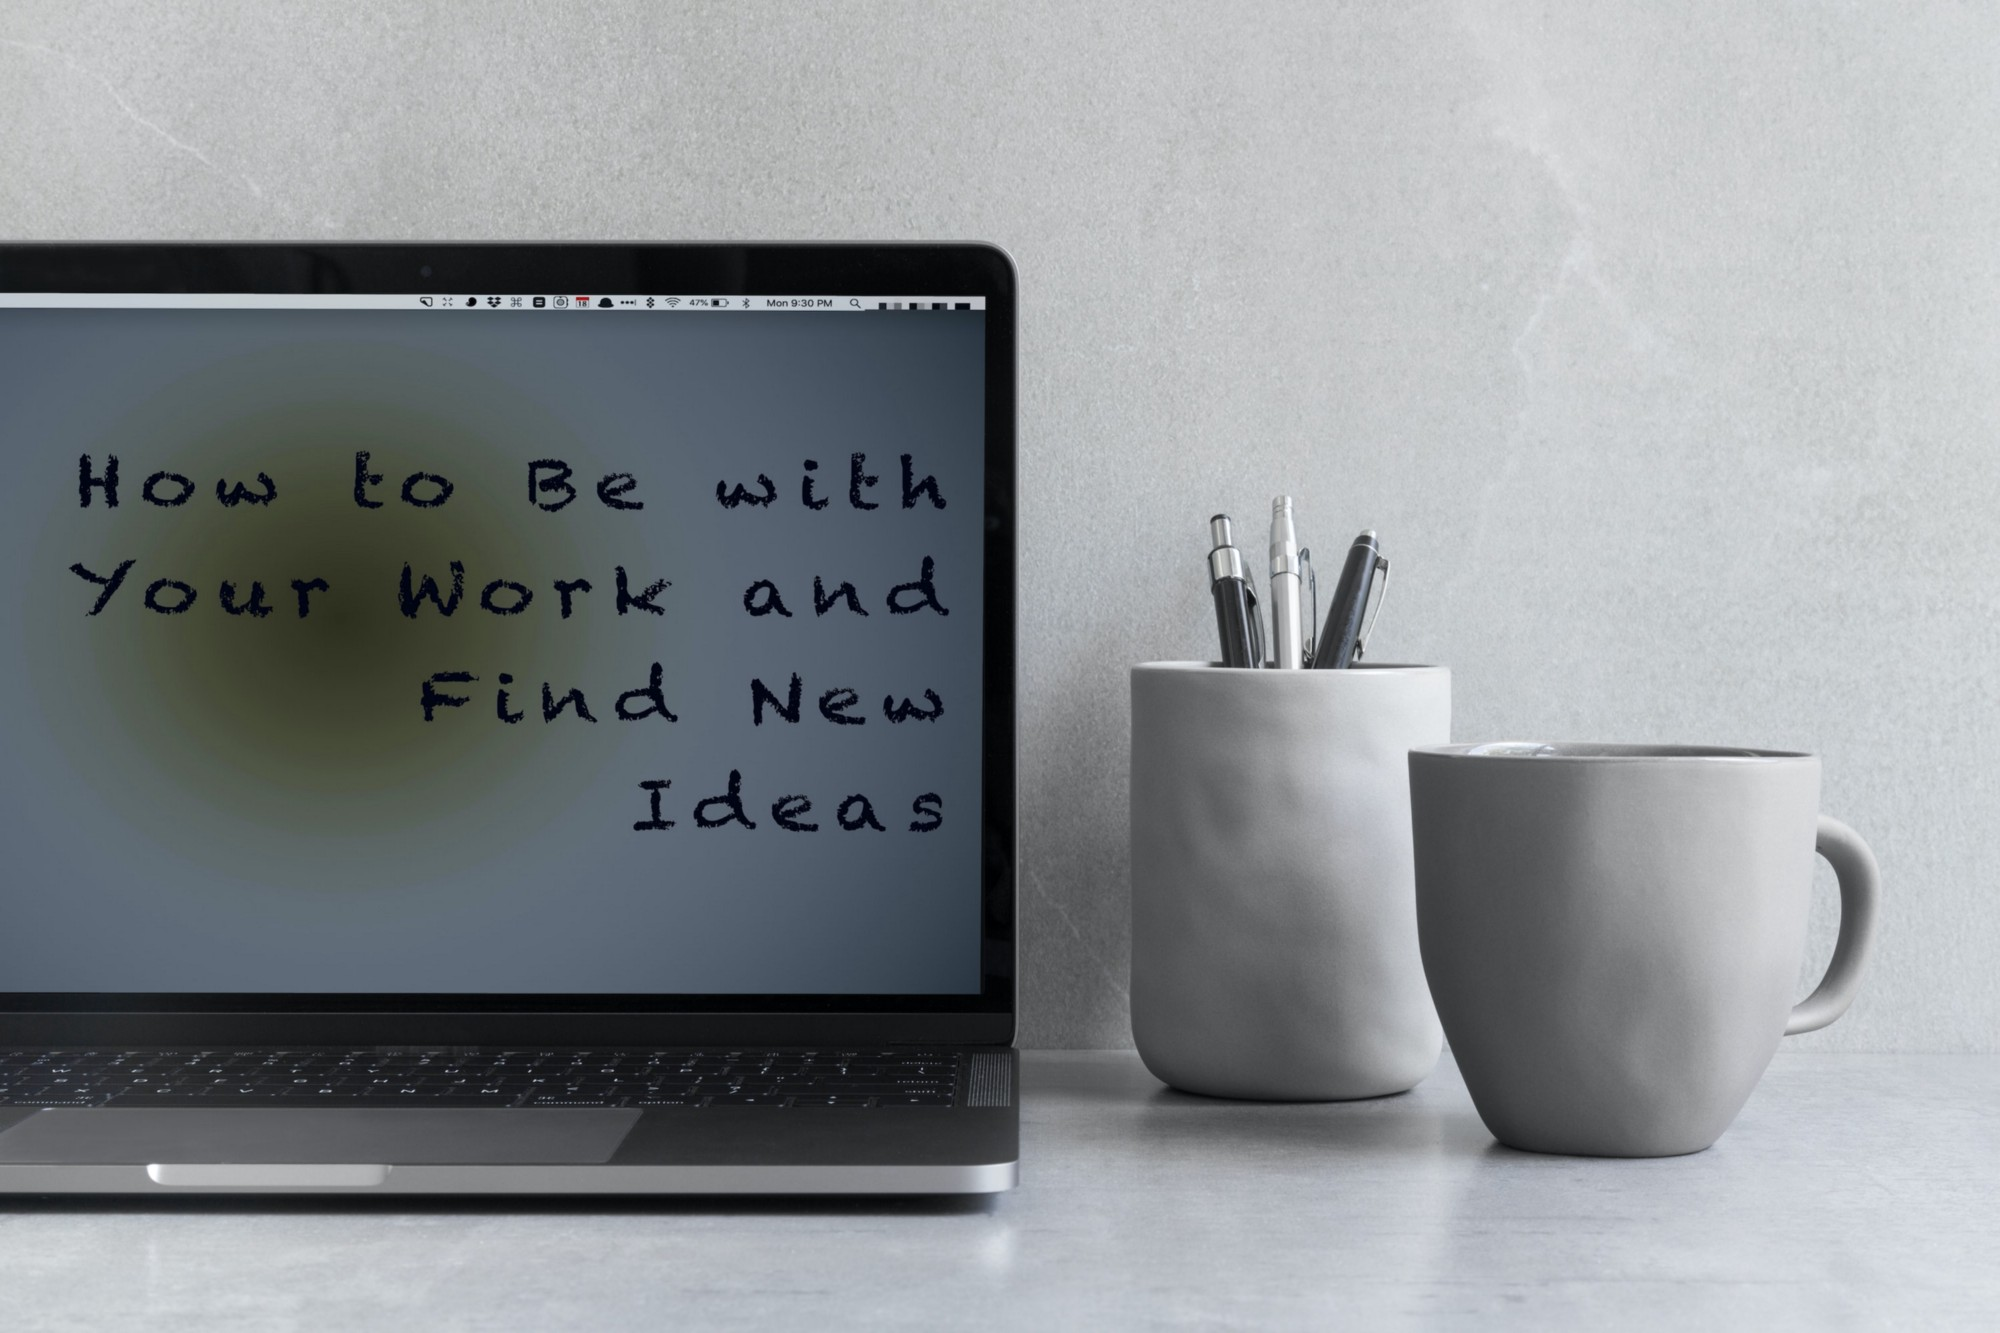 How to Be with Your Work and Find New Ideas